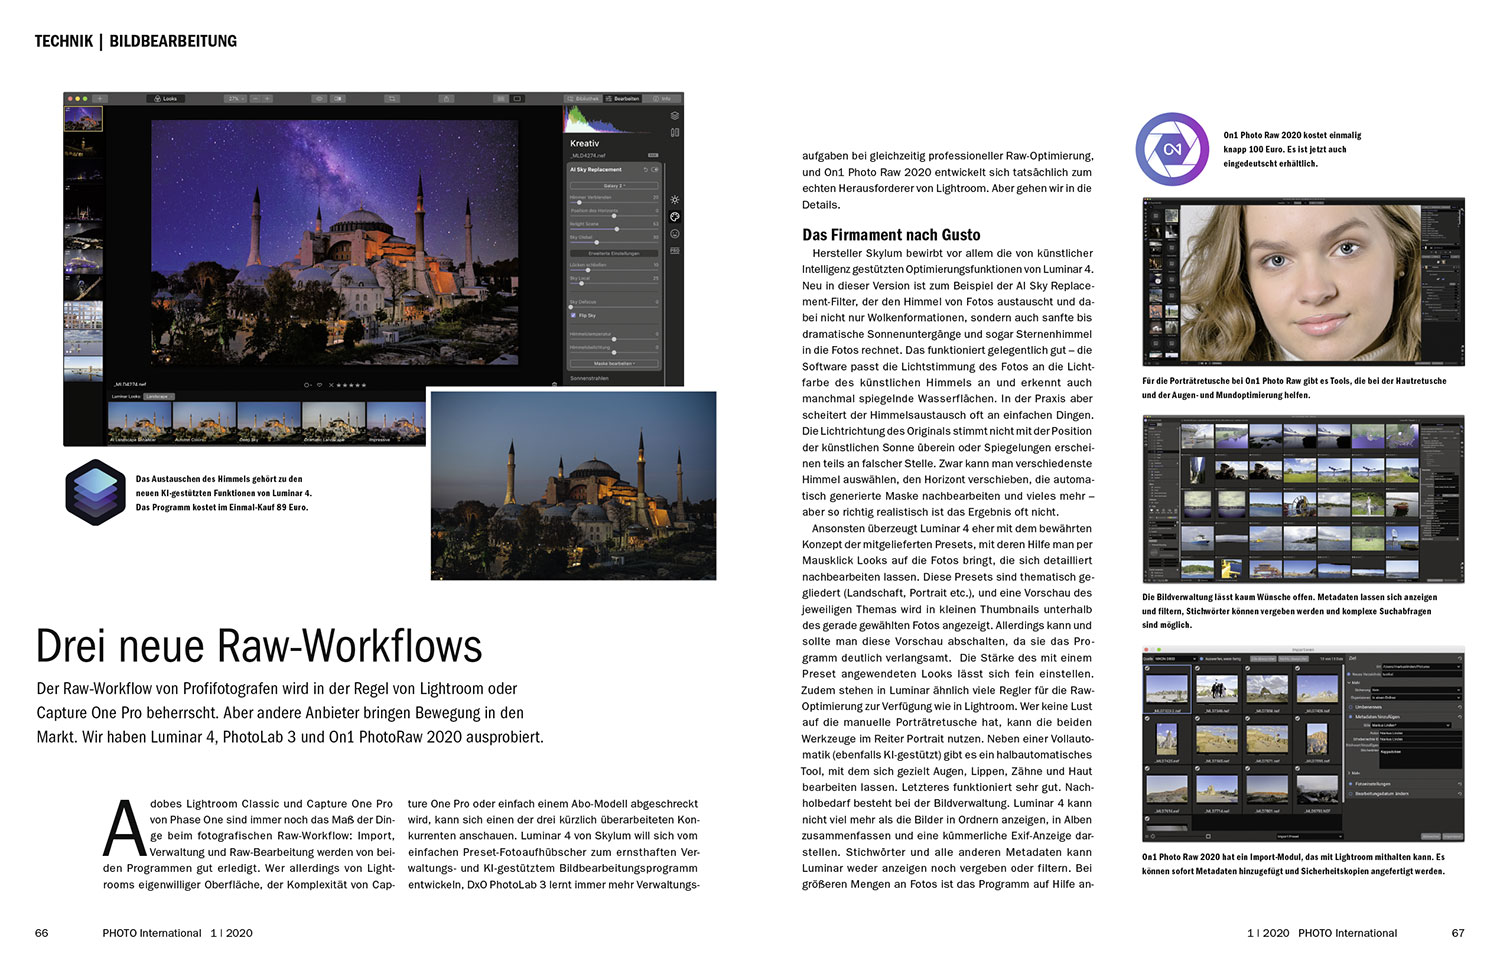 Technik_Bildbearbeitung-RAW-Workflow_Photo-International-01-2020